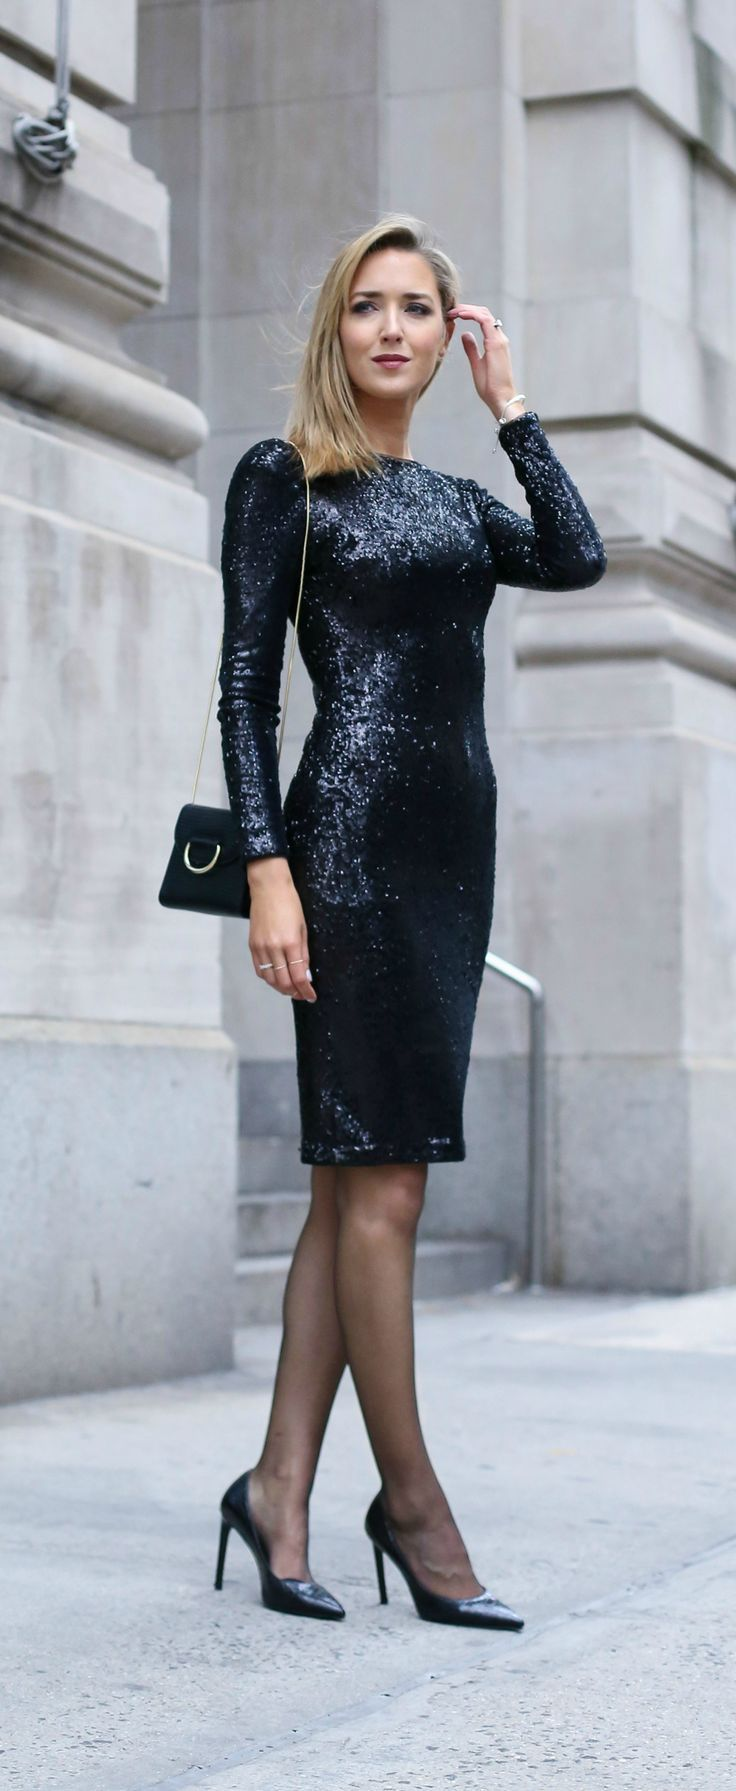 long sleeve black sequin cocktail dress, perfect for a dressy night out at the theater